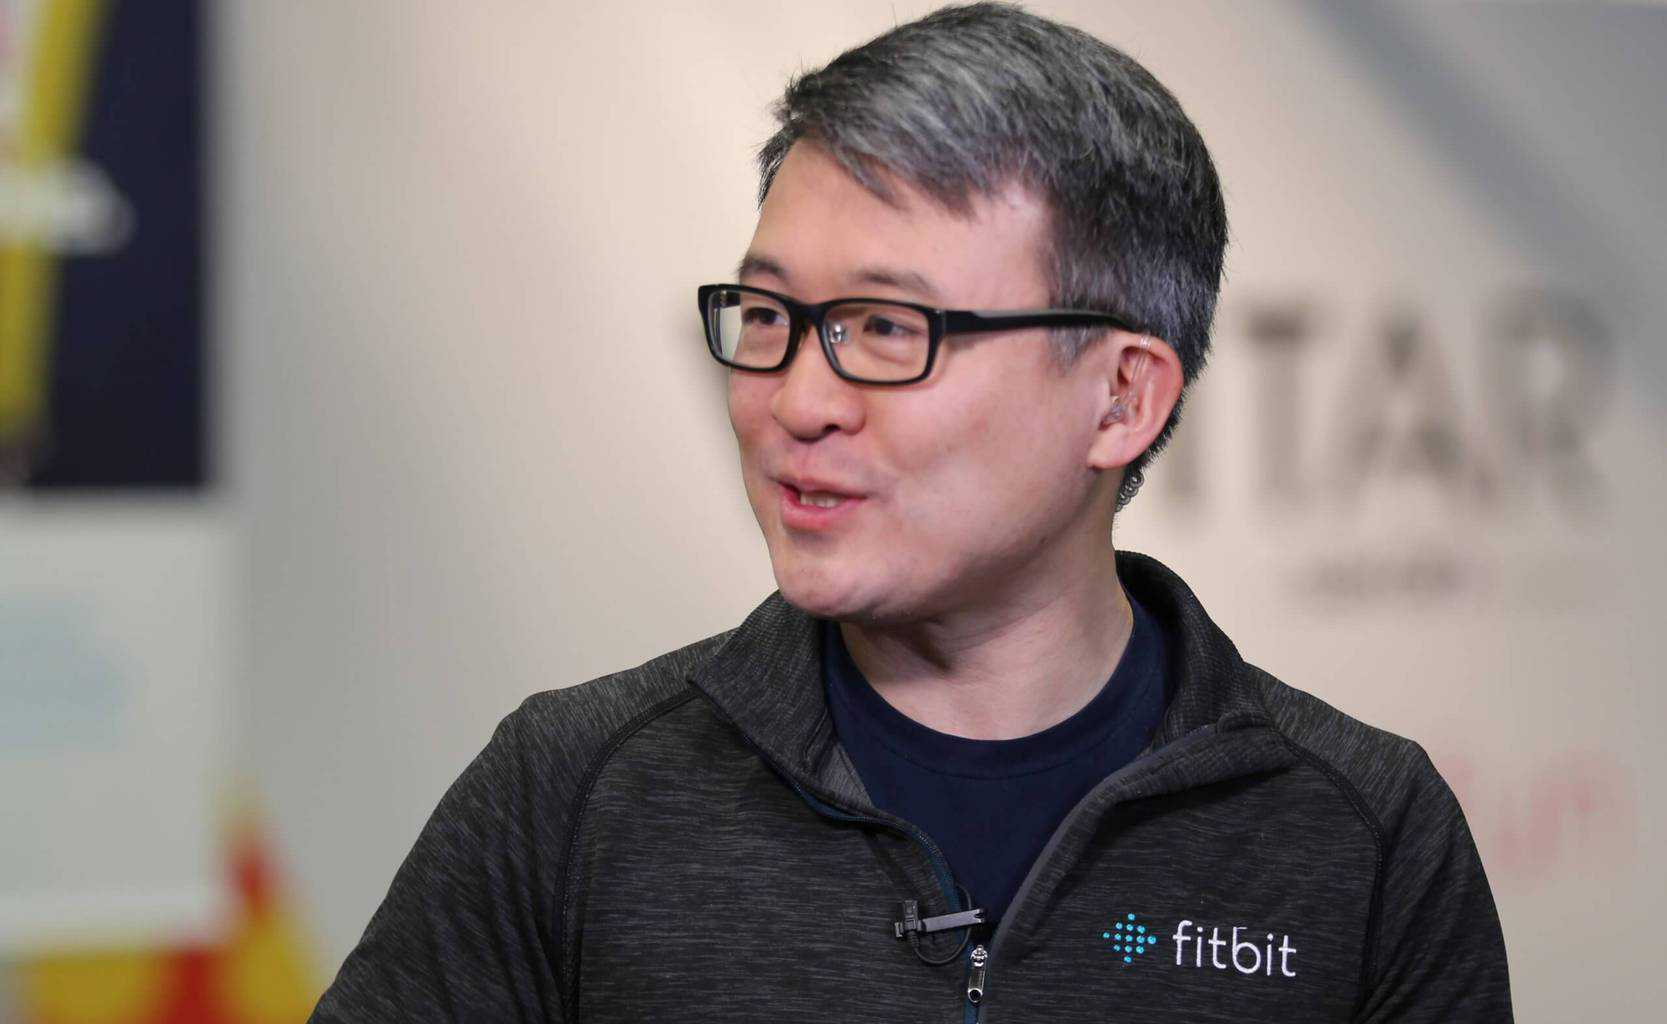 fitbit ceo james park in Google deal